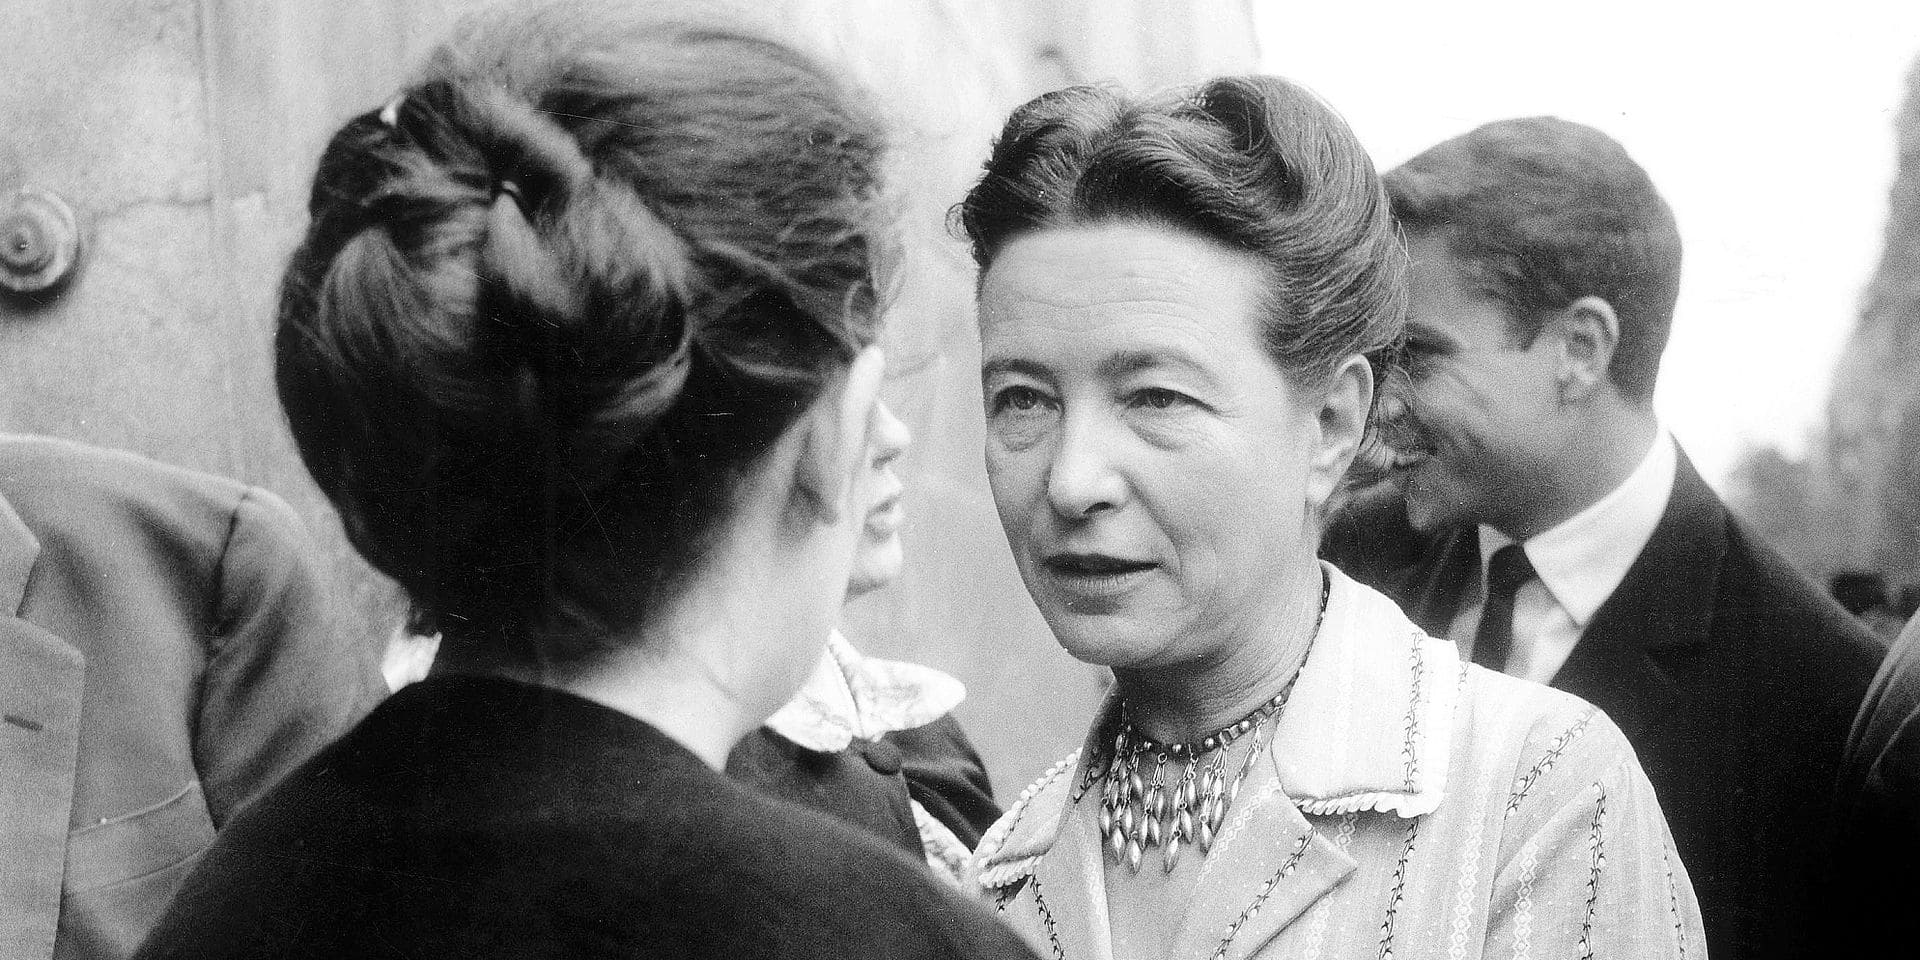 L'ecrivain francais Simone de Beauvoir, le 17 juin 1960 Neg:A98520 --- The french writer Simone de Beauvoir, on june 17th, 1960 Reporters / Rue des Archives *** Local Caption *** The french writer Simone de Beauvoir, on june 17th, 1960